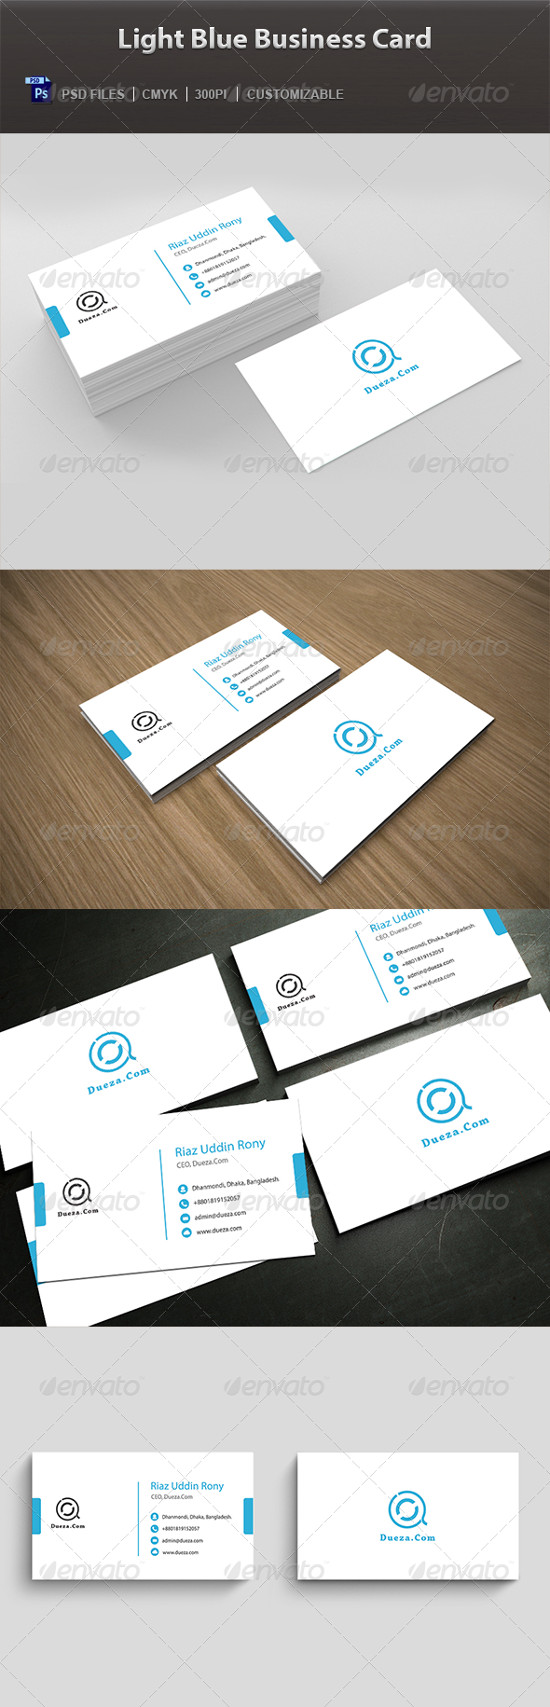 17 Best Business Card Templates for Corporate